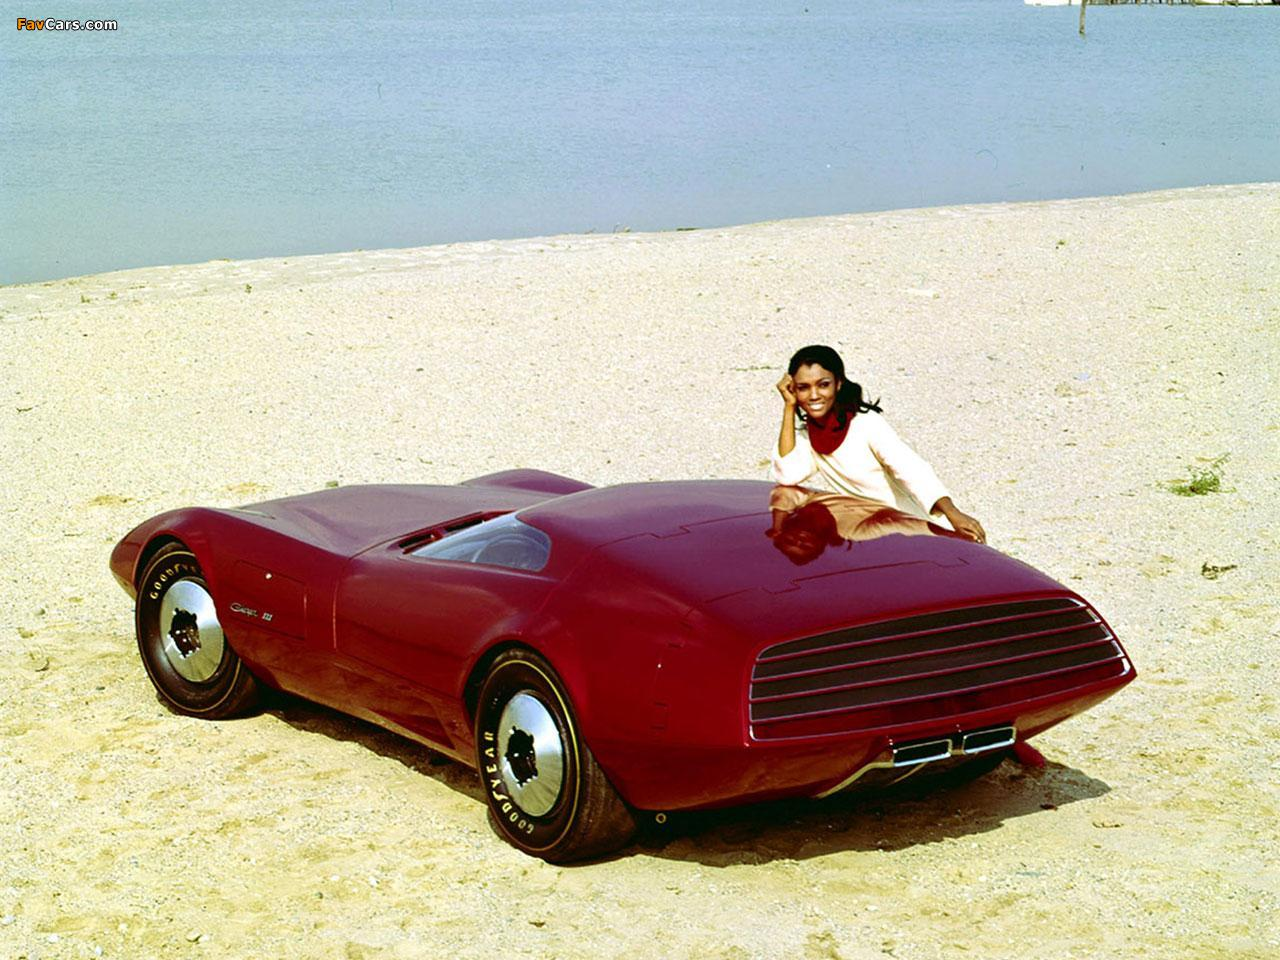 Images of Dodge Charger III Concept Car 1968 (1280 x 960)